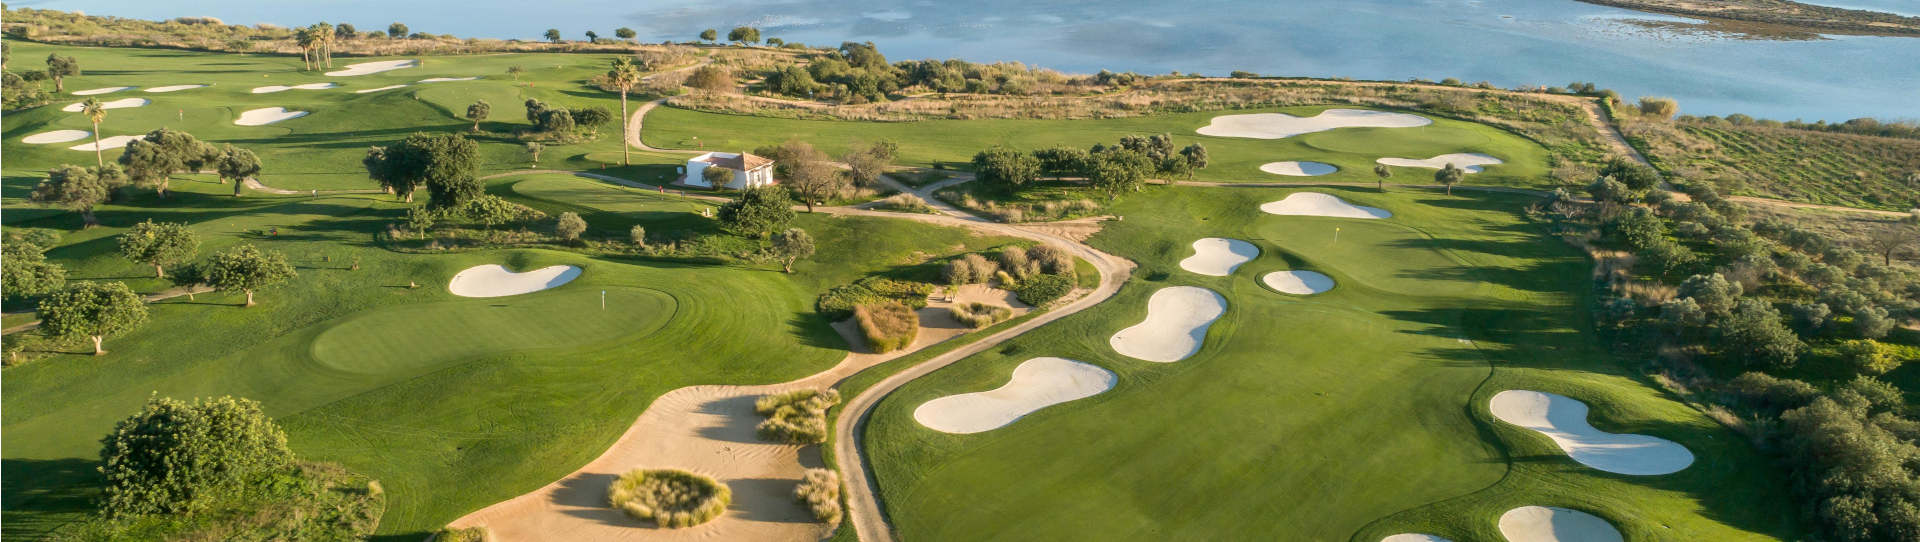 Quinta da Ria Golf Course - Photo 1